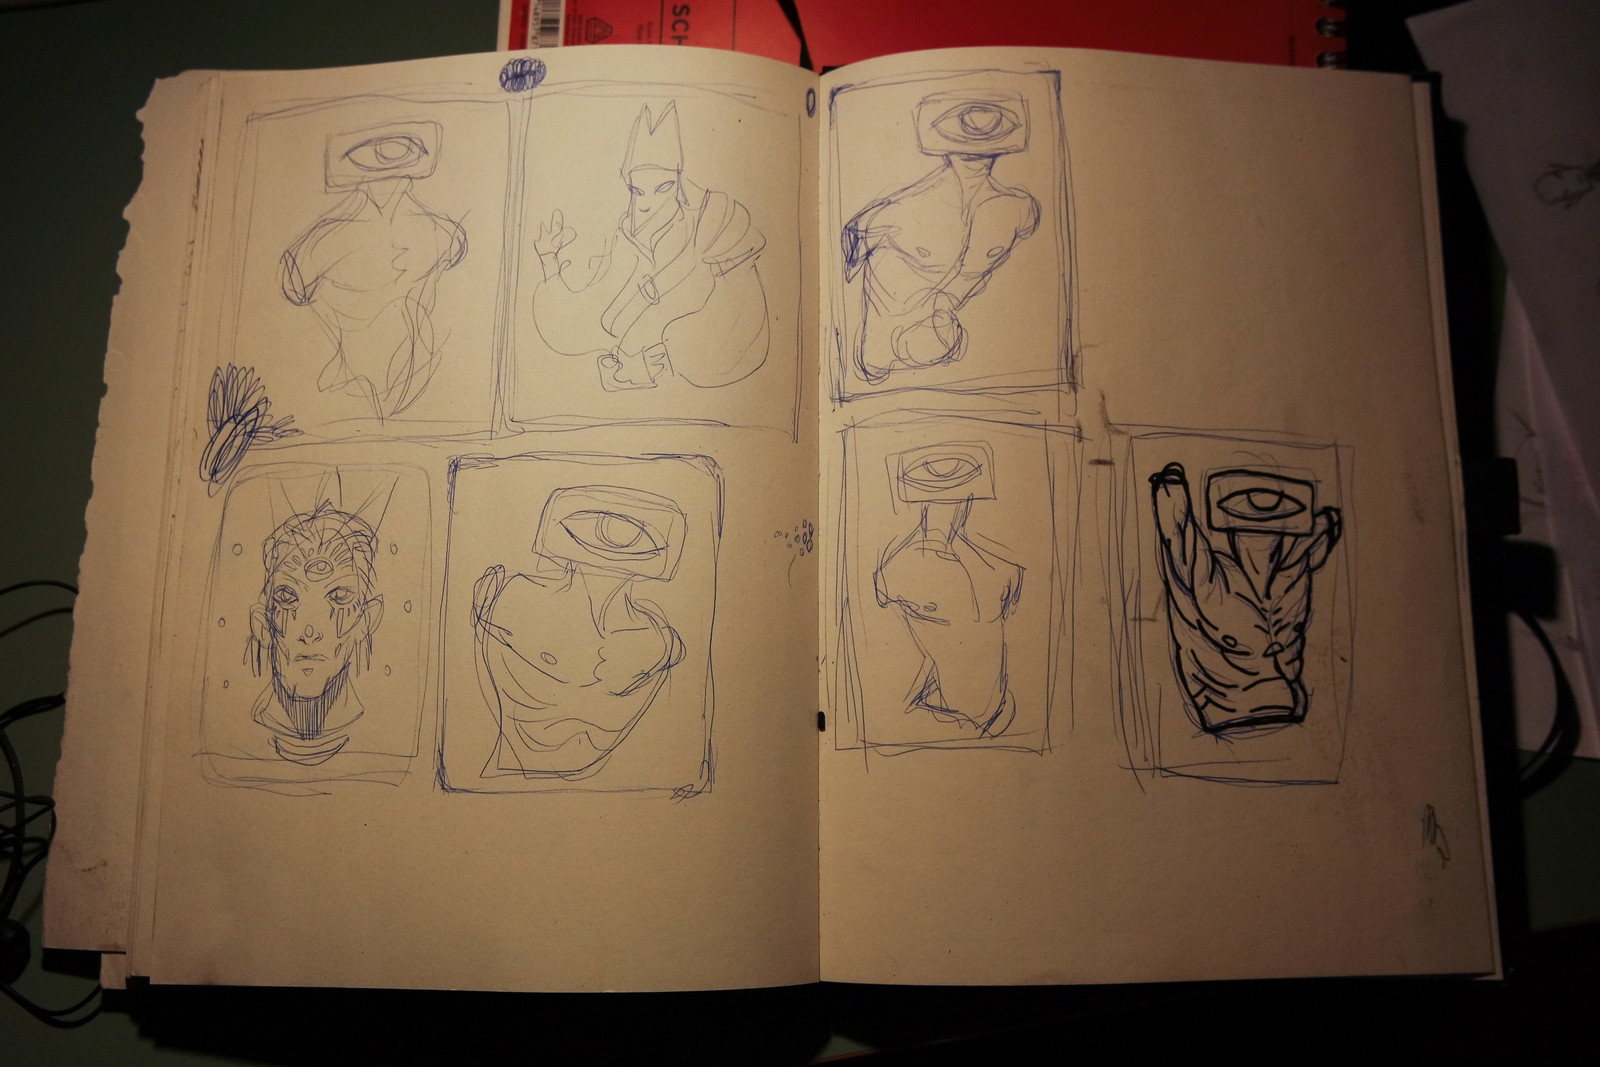 sketches for a linocut i'll be making soon